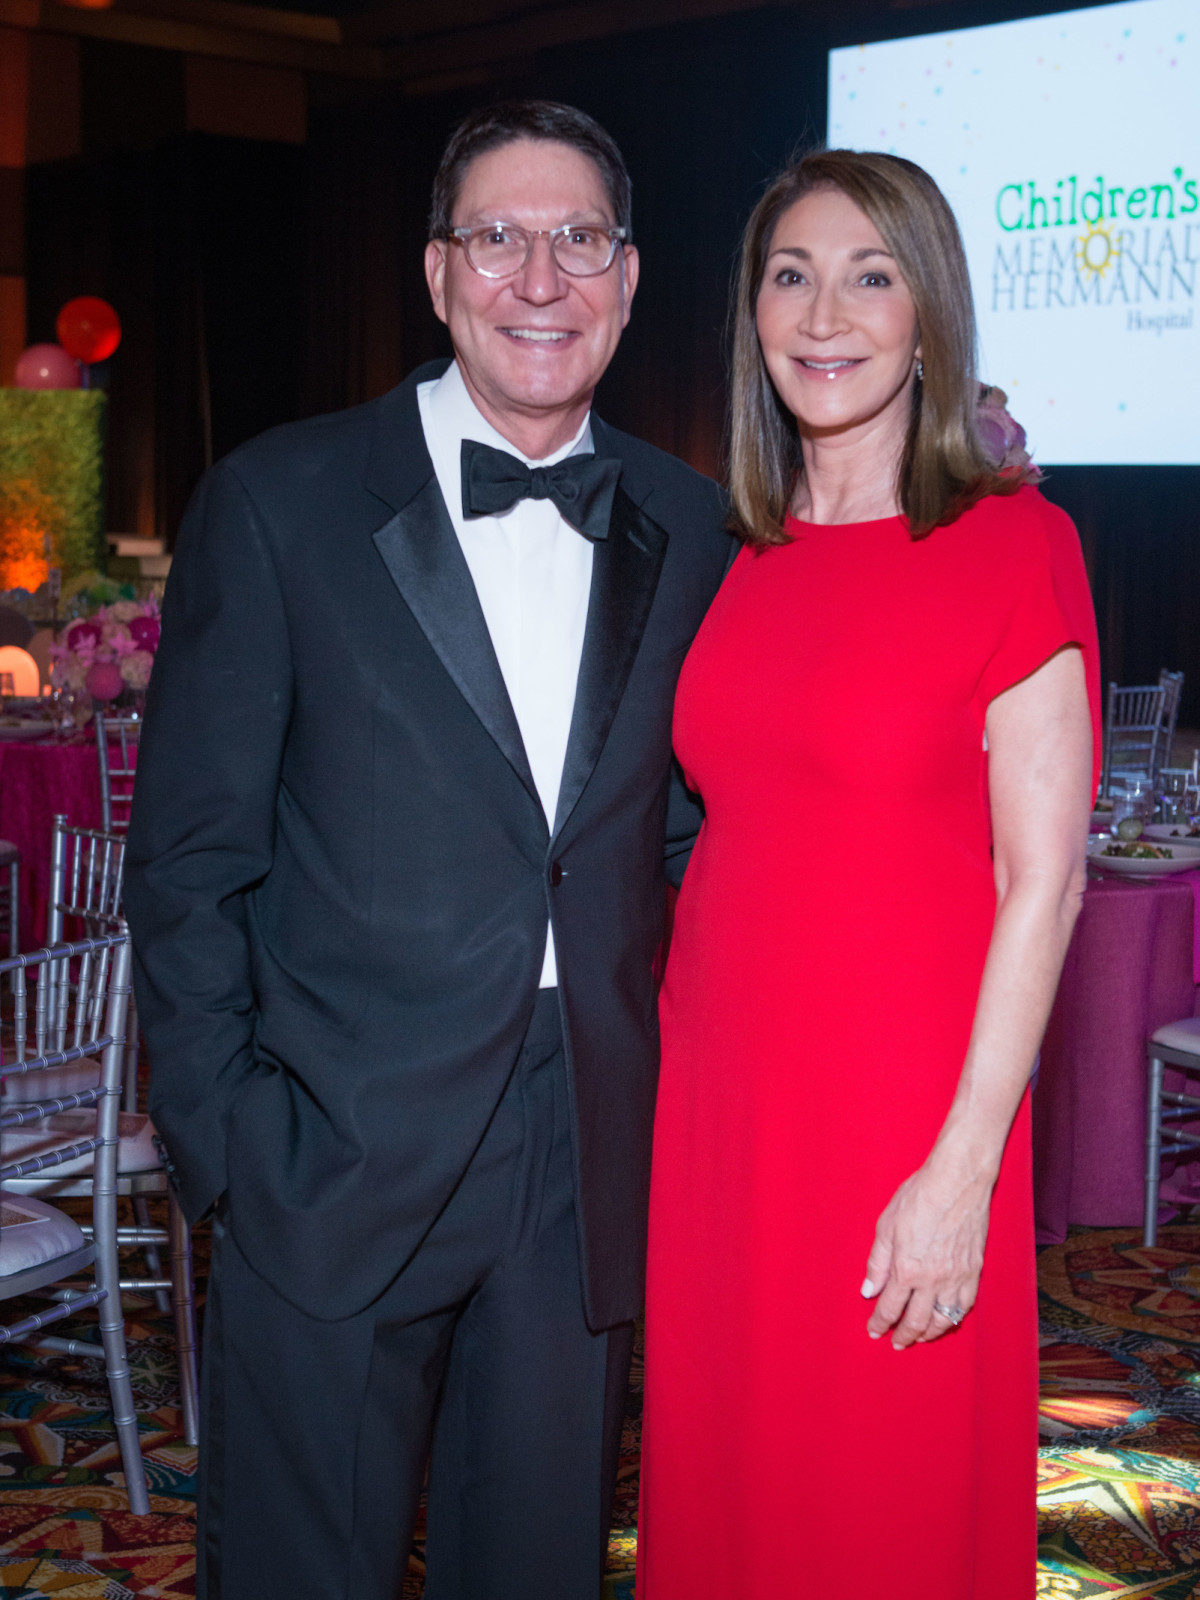 Scott and Soraya McClelland at Memorial Hermann Gala